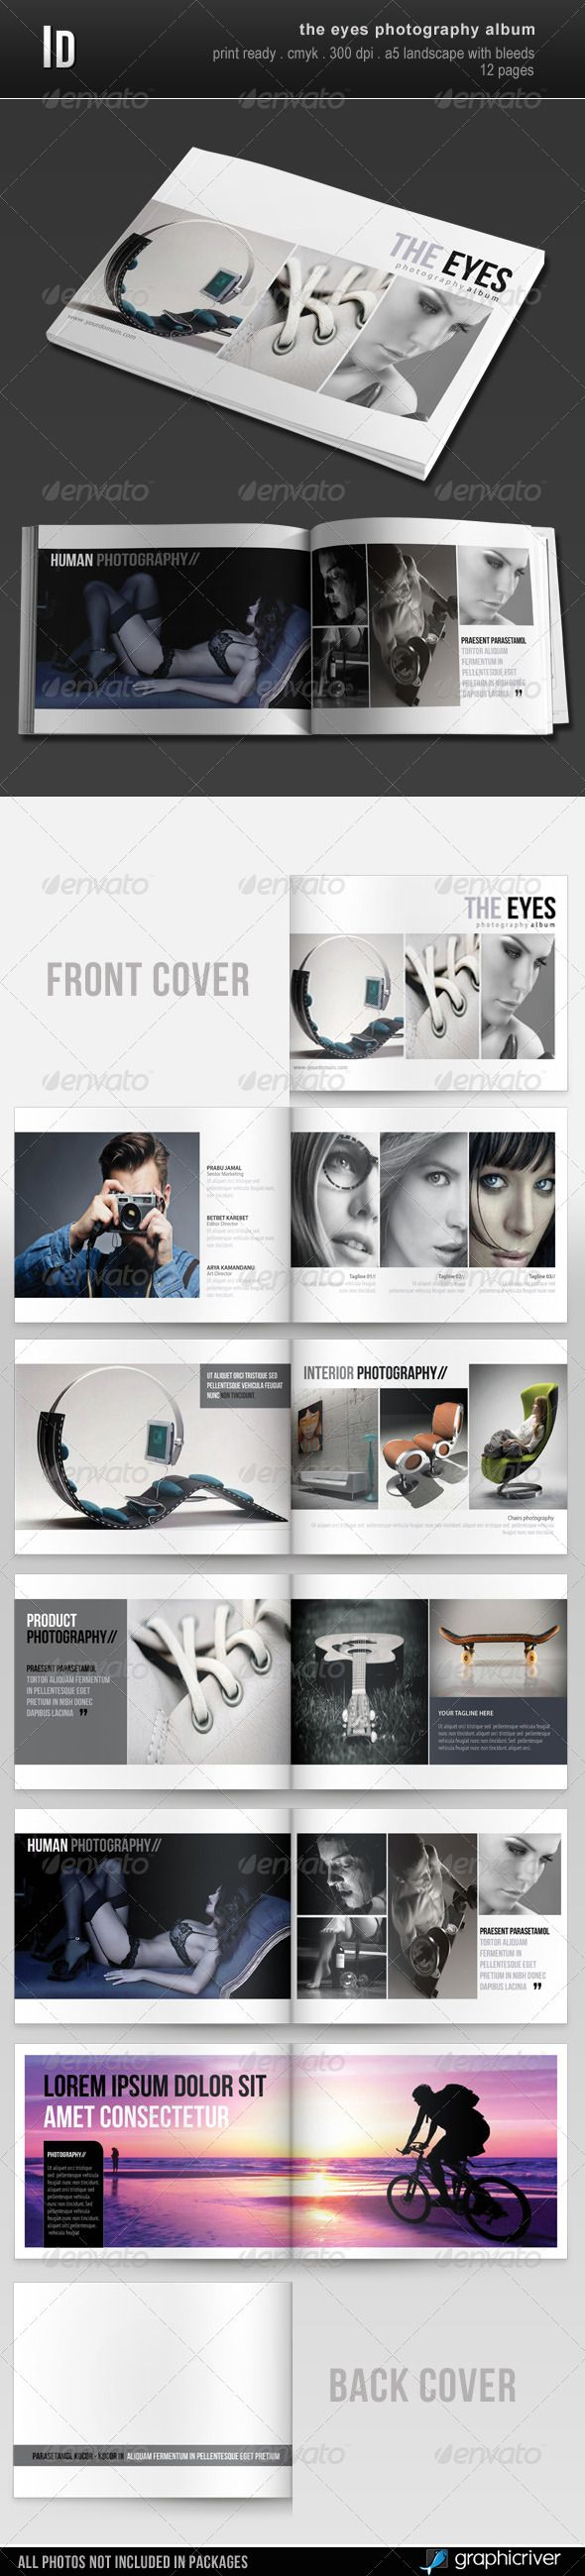 72 best Photo Album Templates images by Mariano k Martin on ...